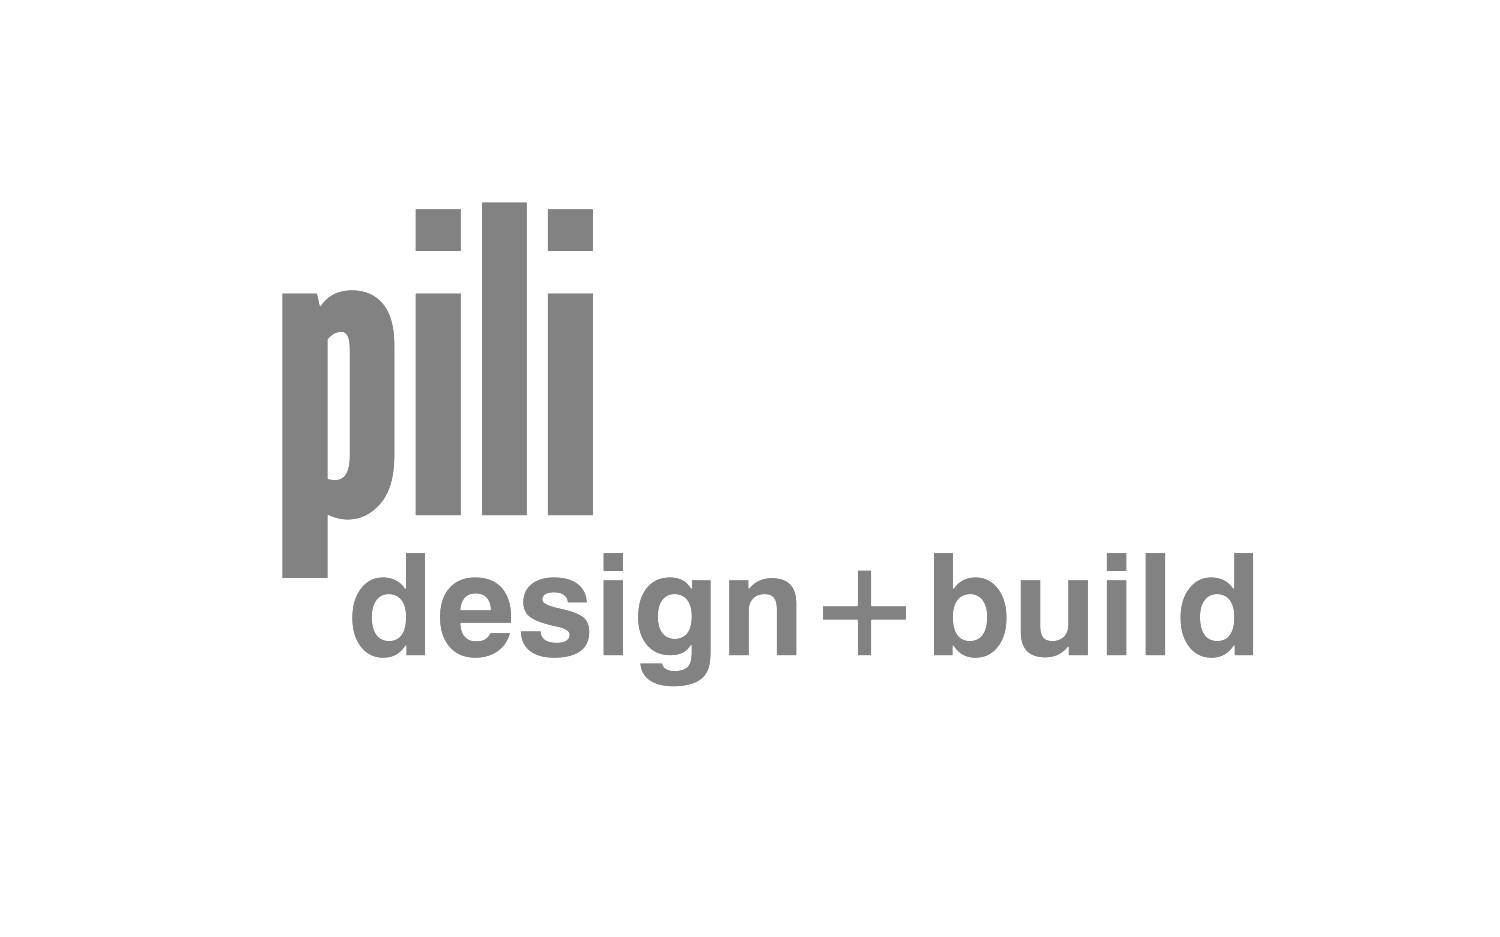 pili design + build